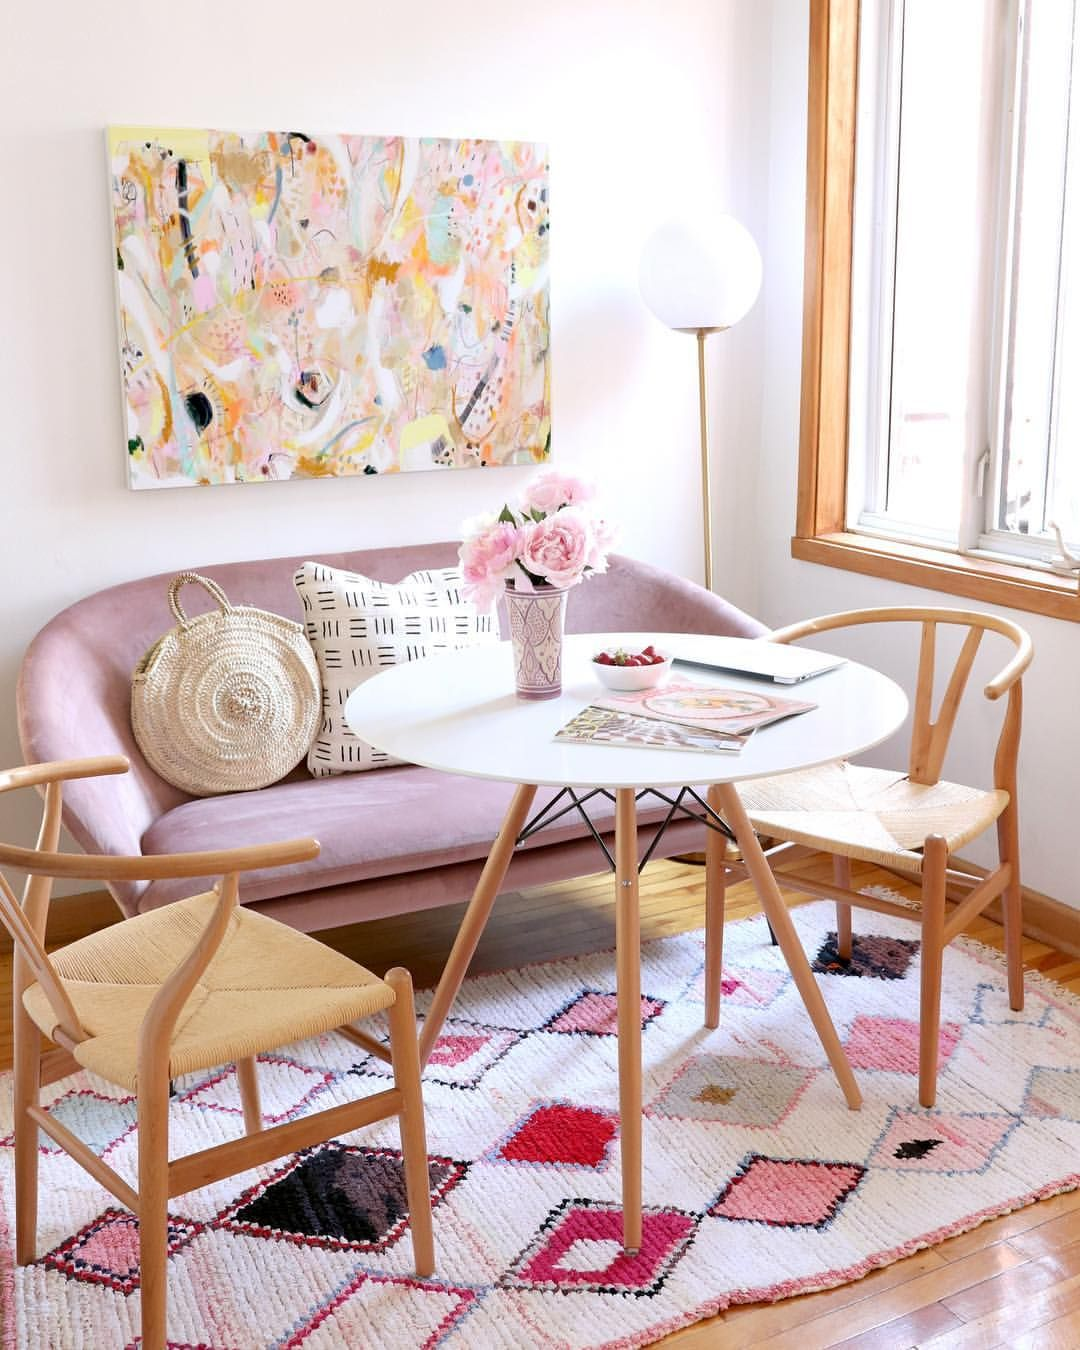 breakfast nook, wooden floor, wooden chairs with rattan seat, white round table, pink velvet sofa